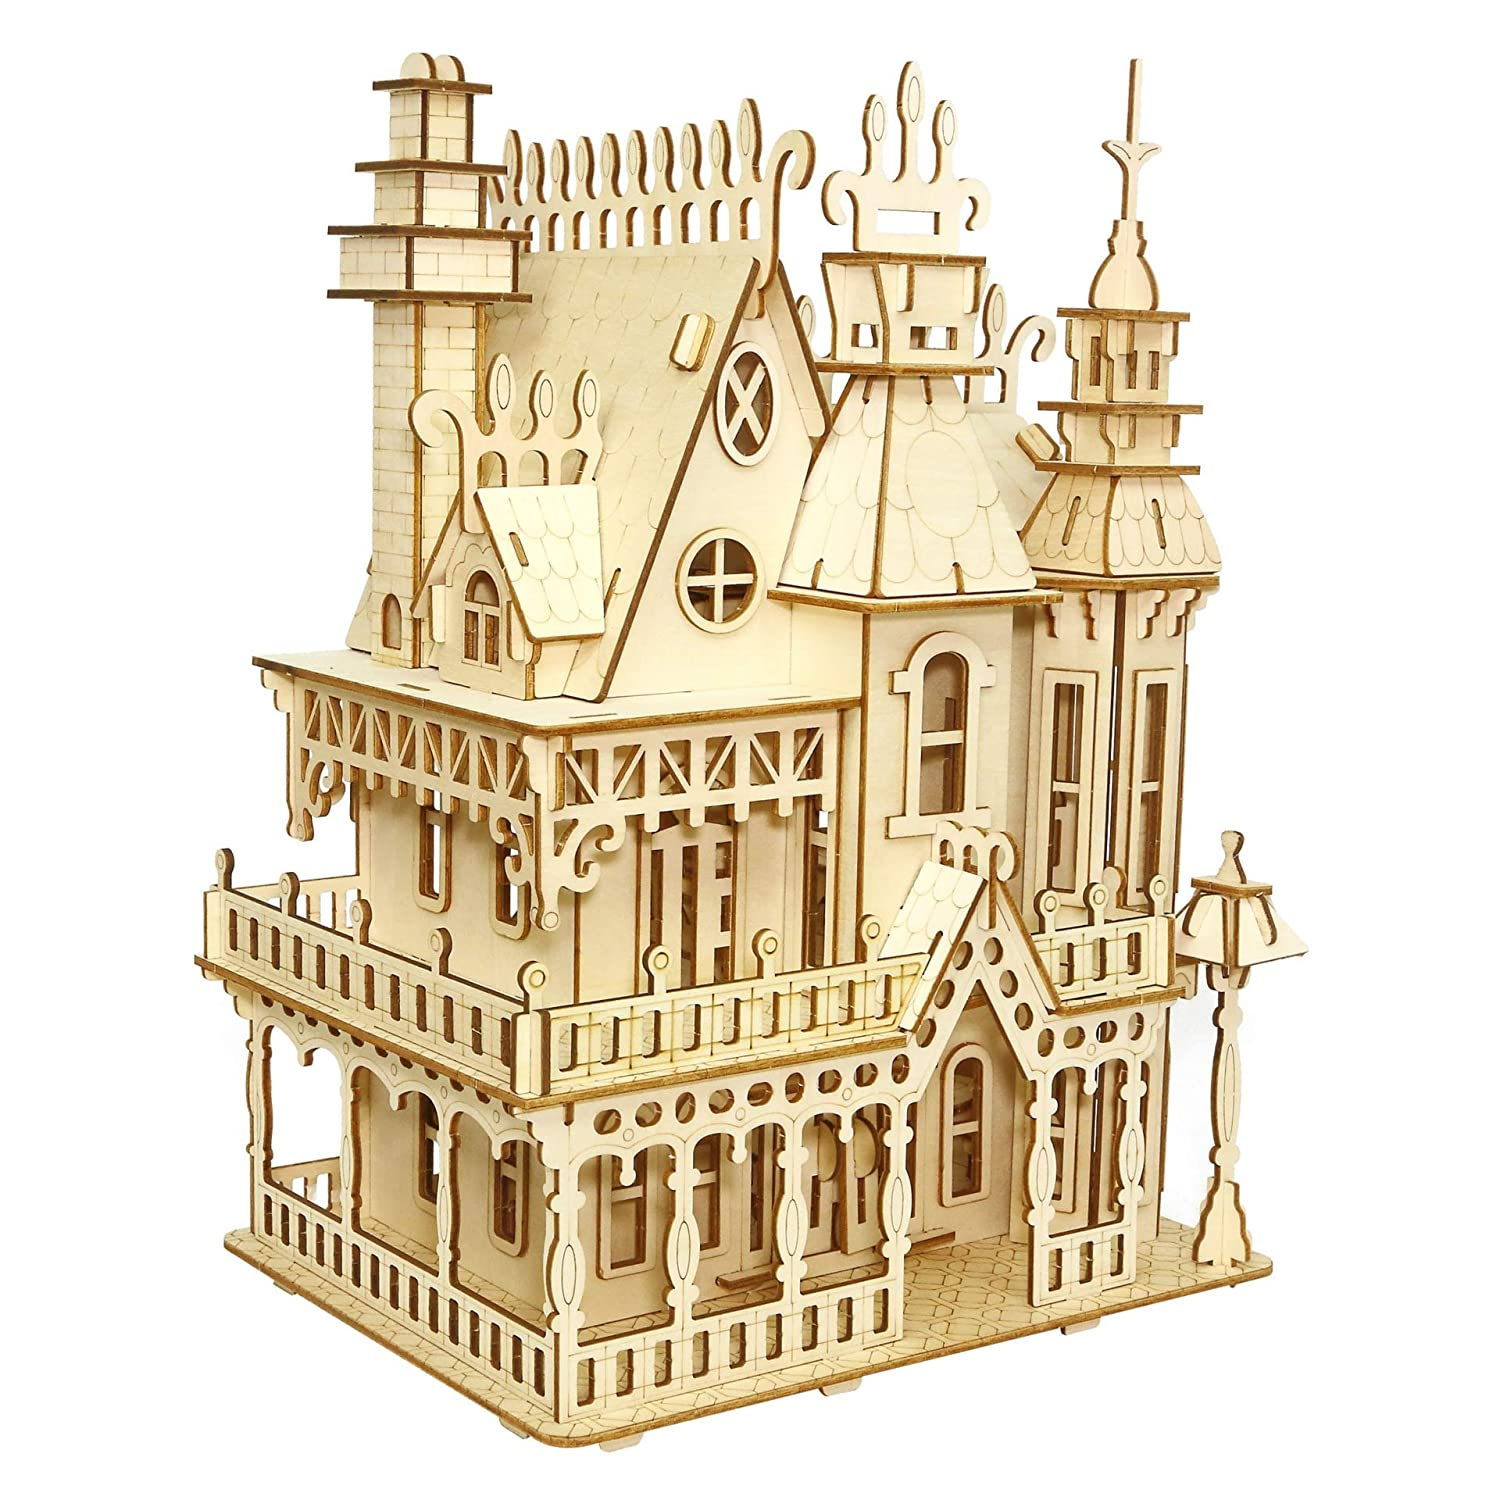 3D Puzzles Puzzles DIY House Villa, Wooden Assembly Kits 268pc Educational Toys Gifts for Kids